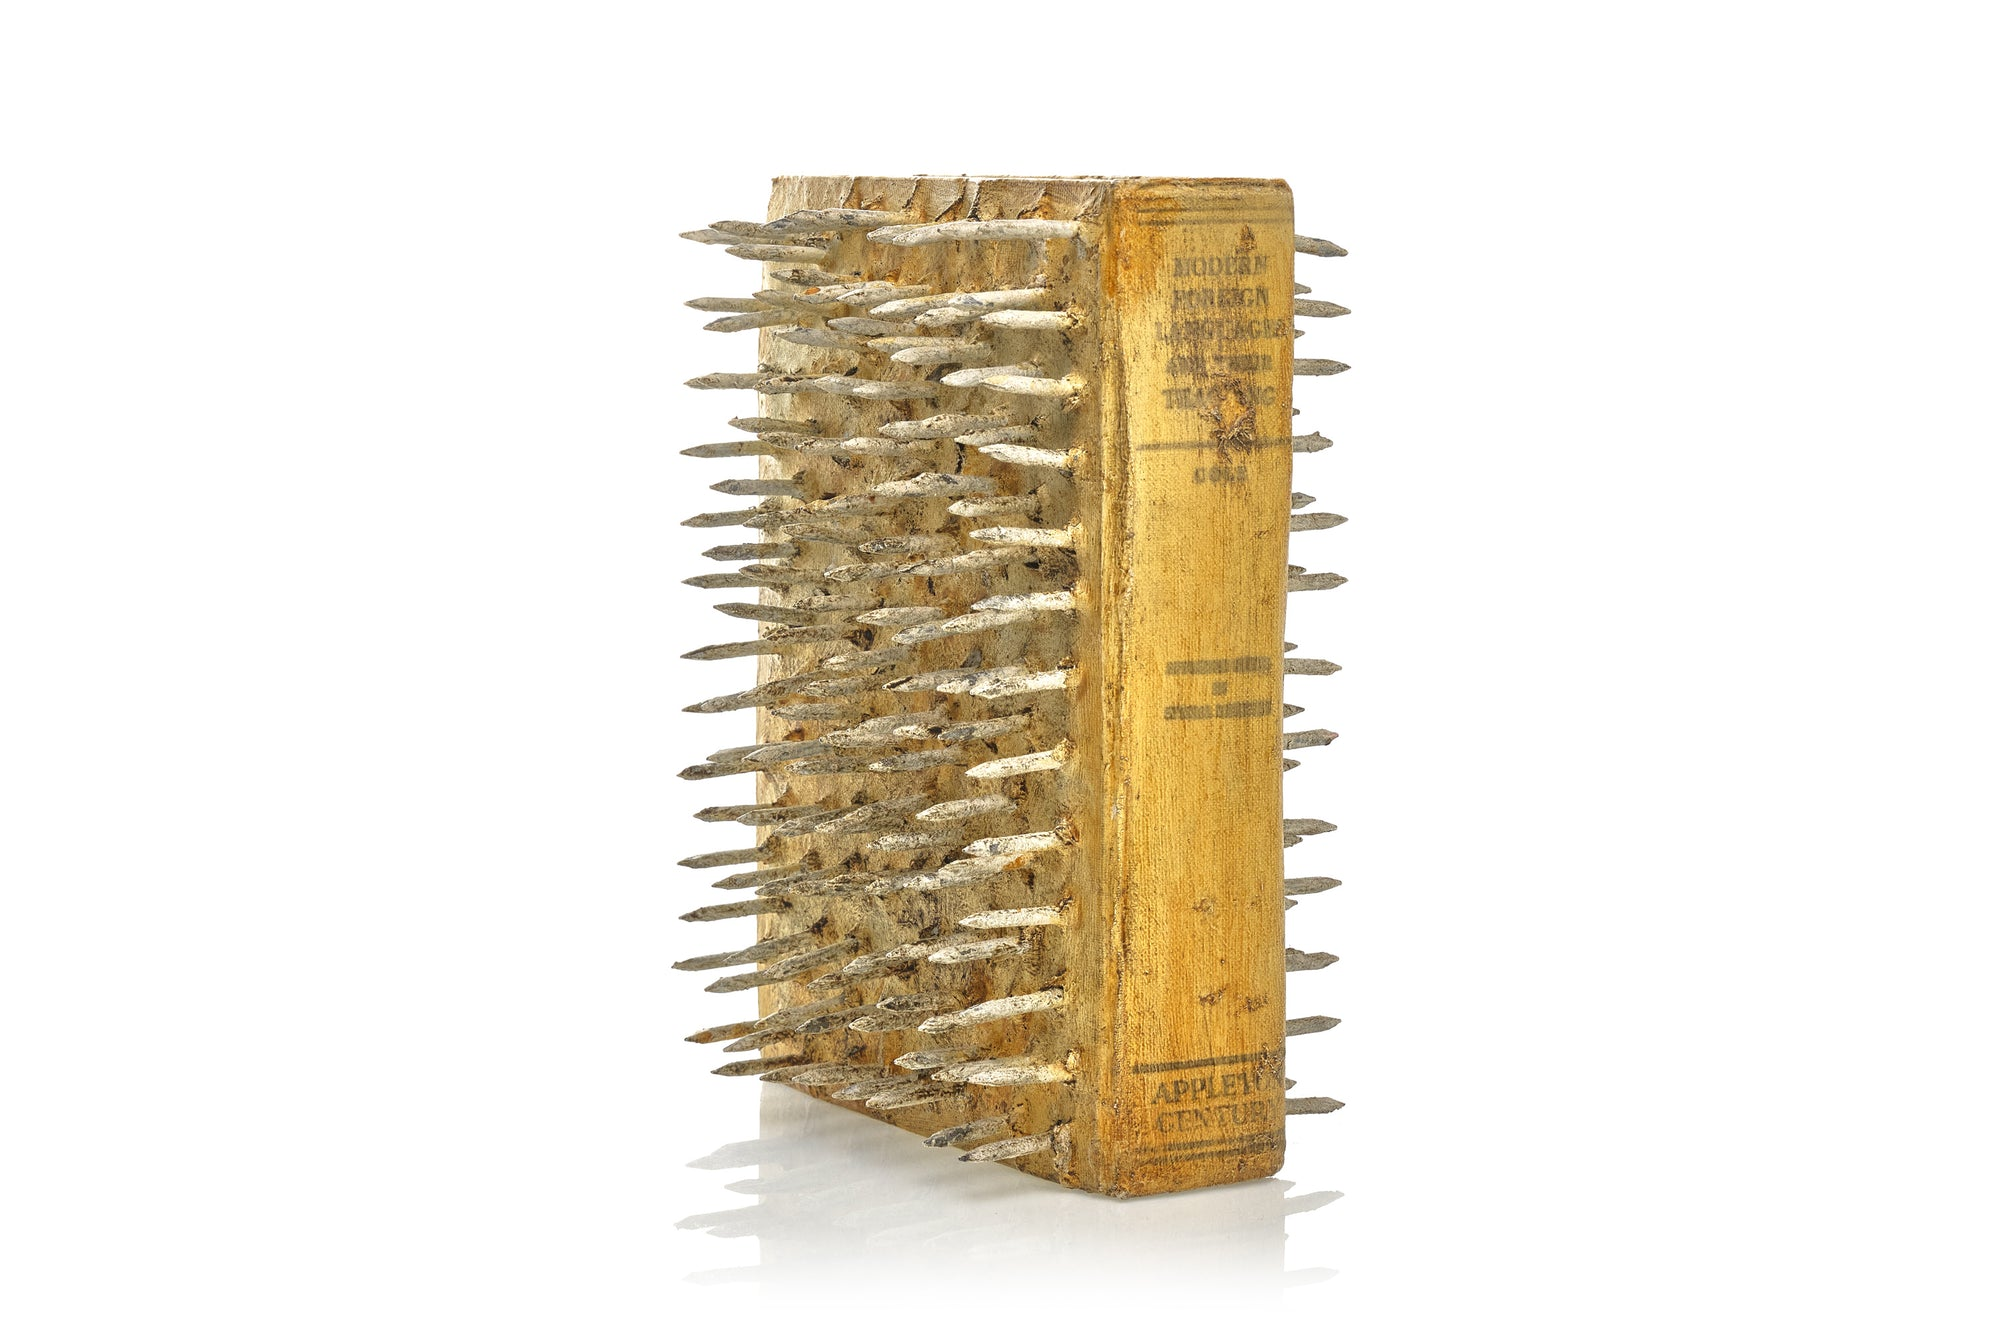 Book Sculpture, Barton Lidice Benes